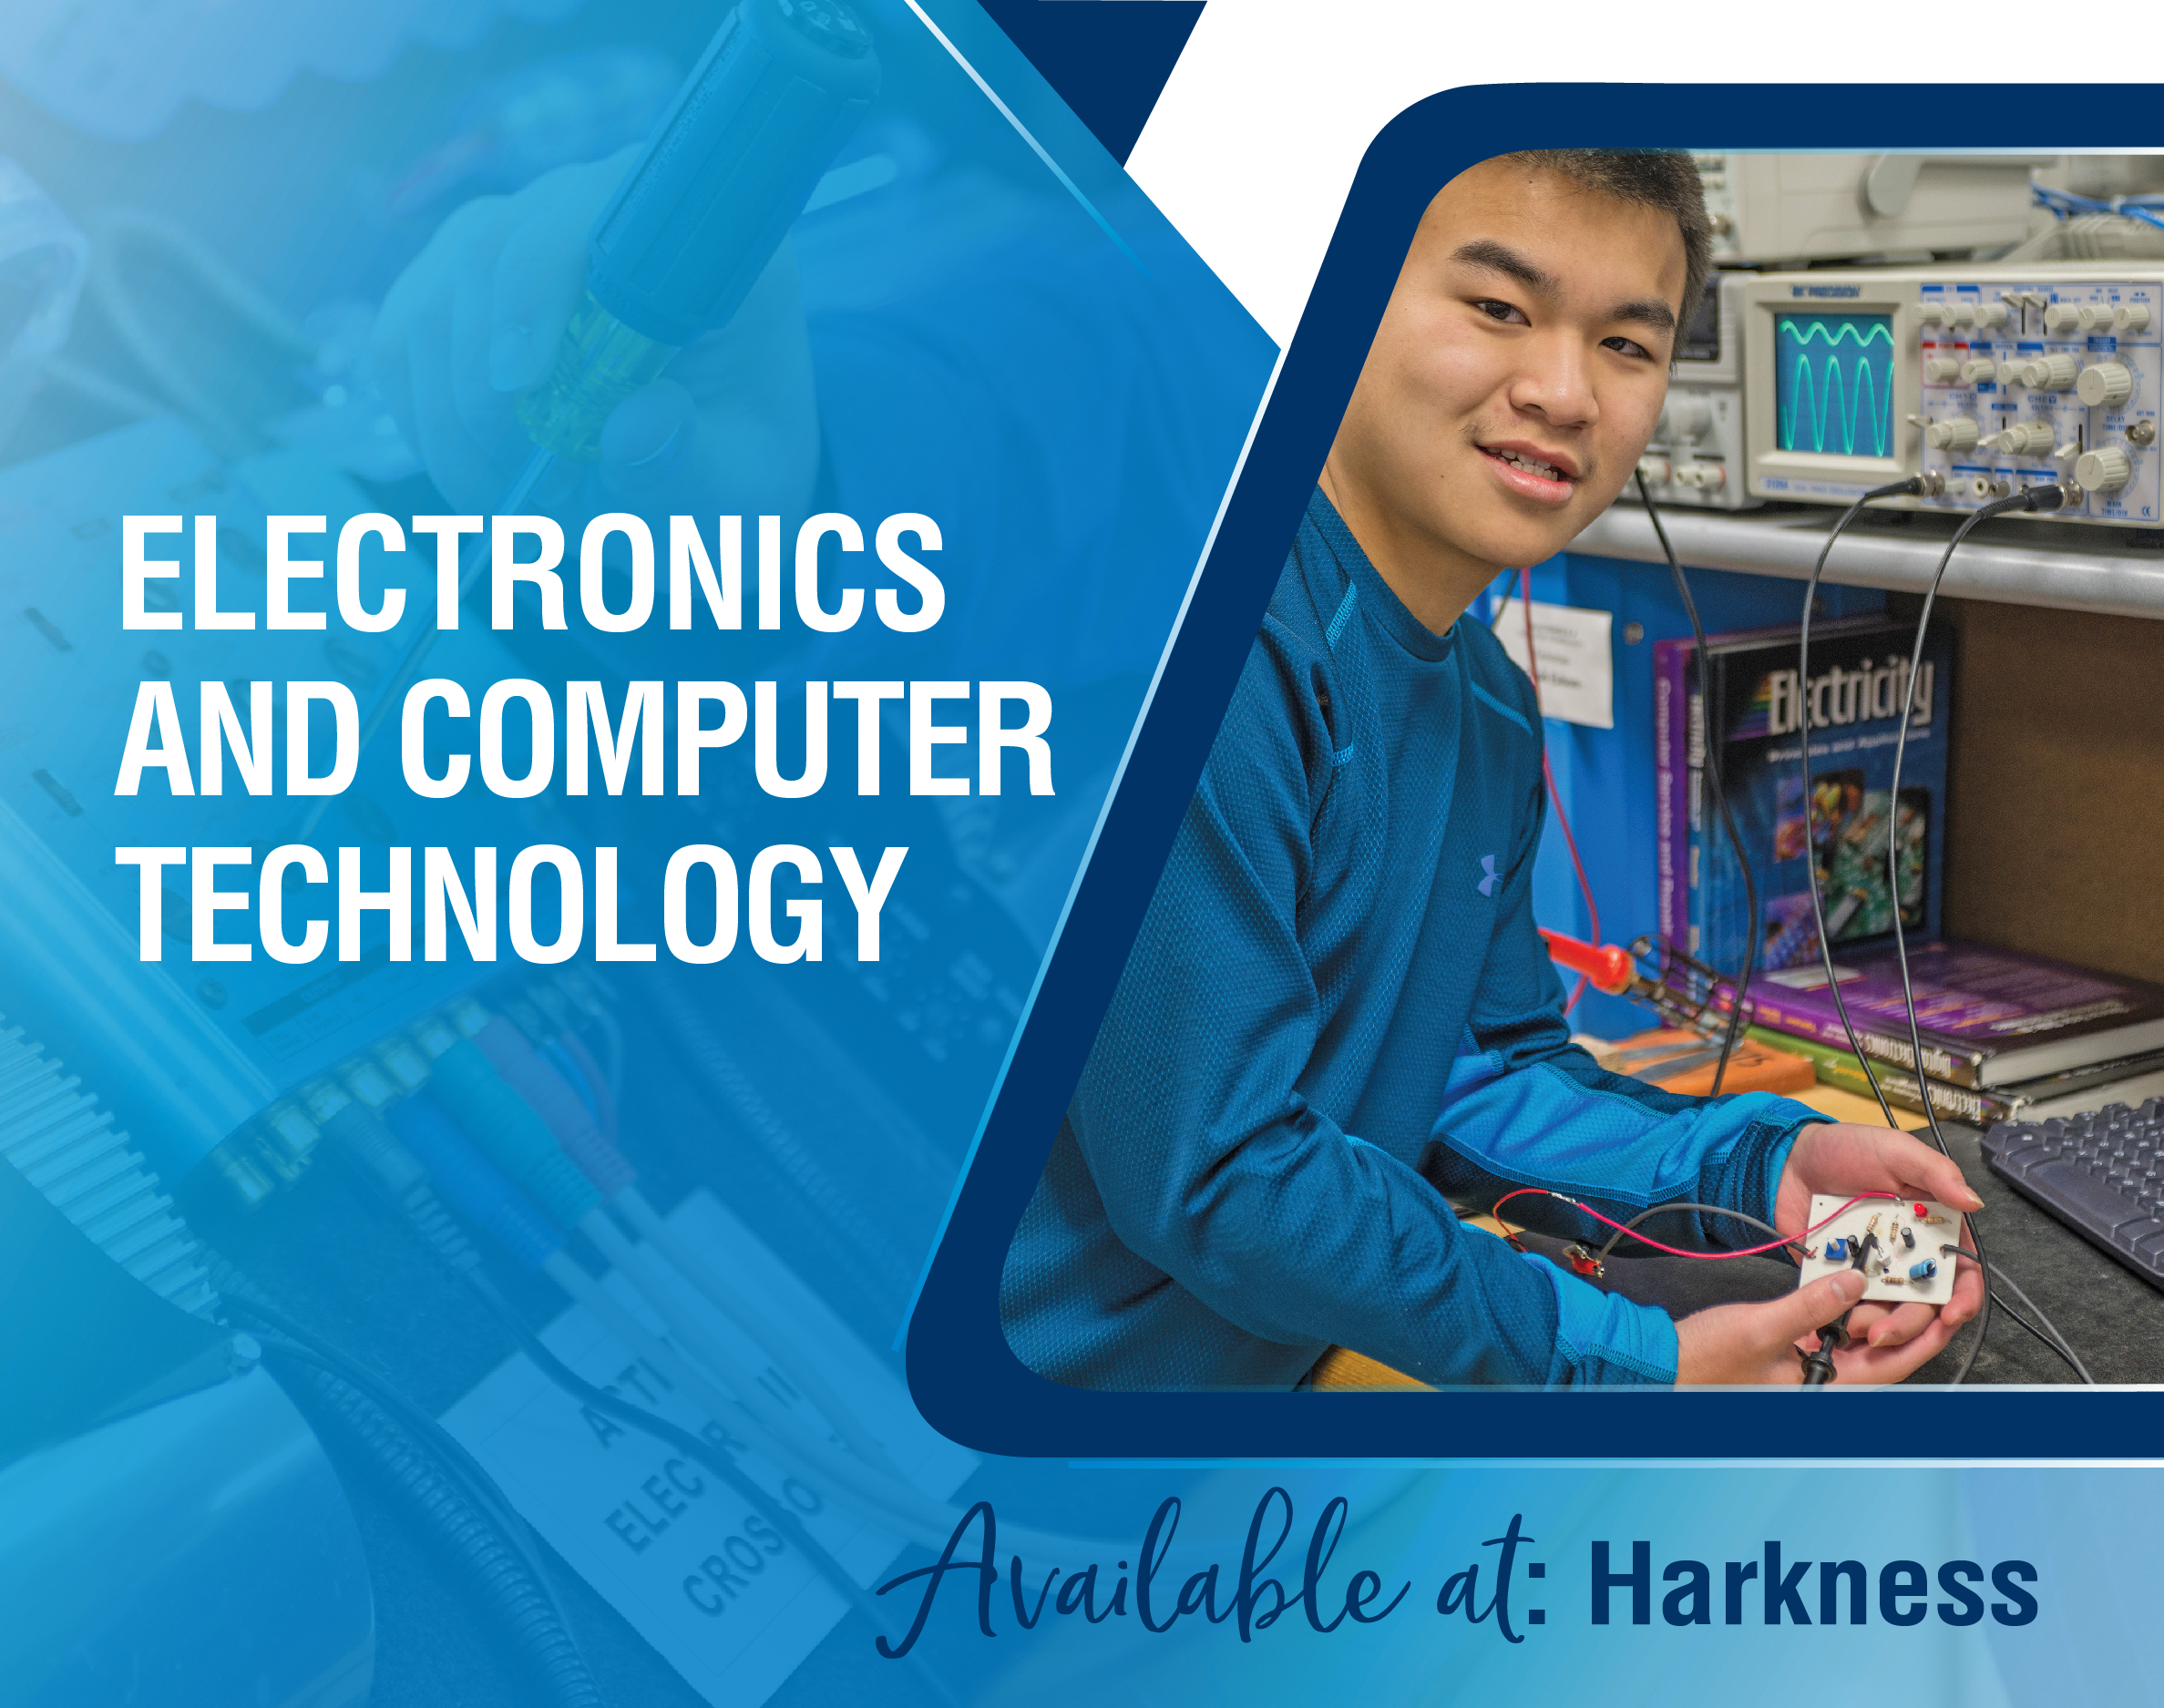 Electronics and Computer Technology